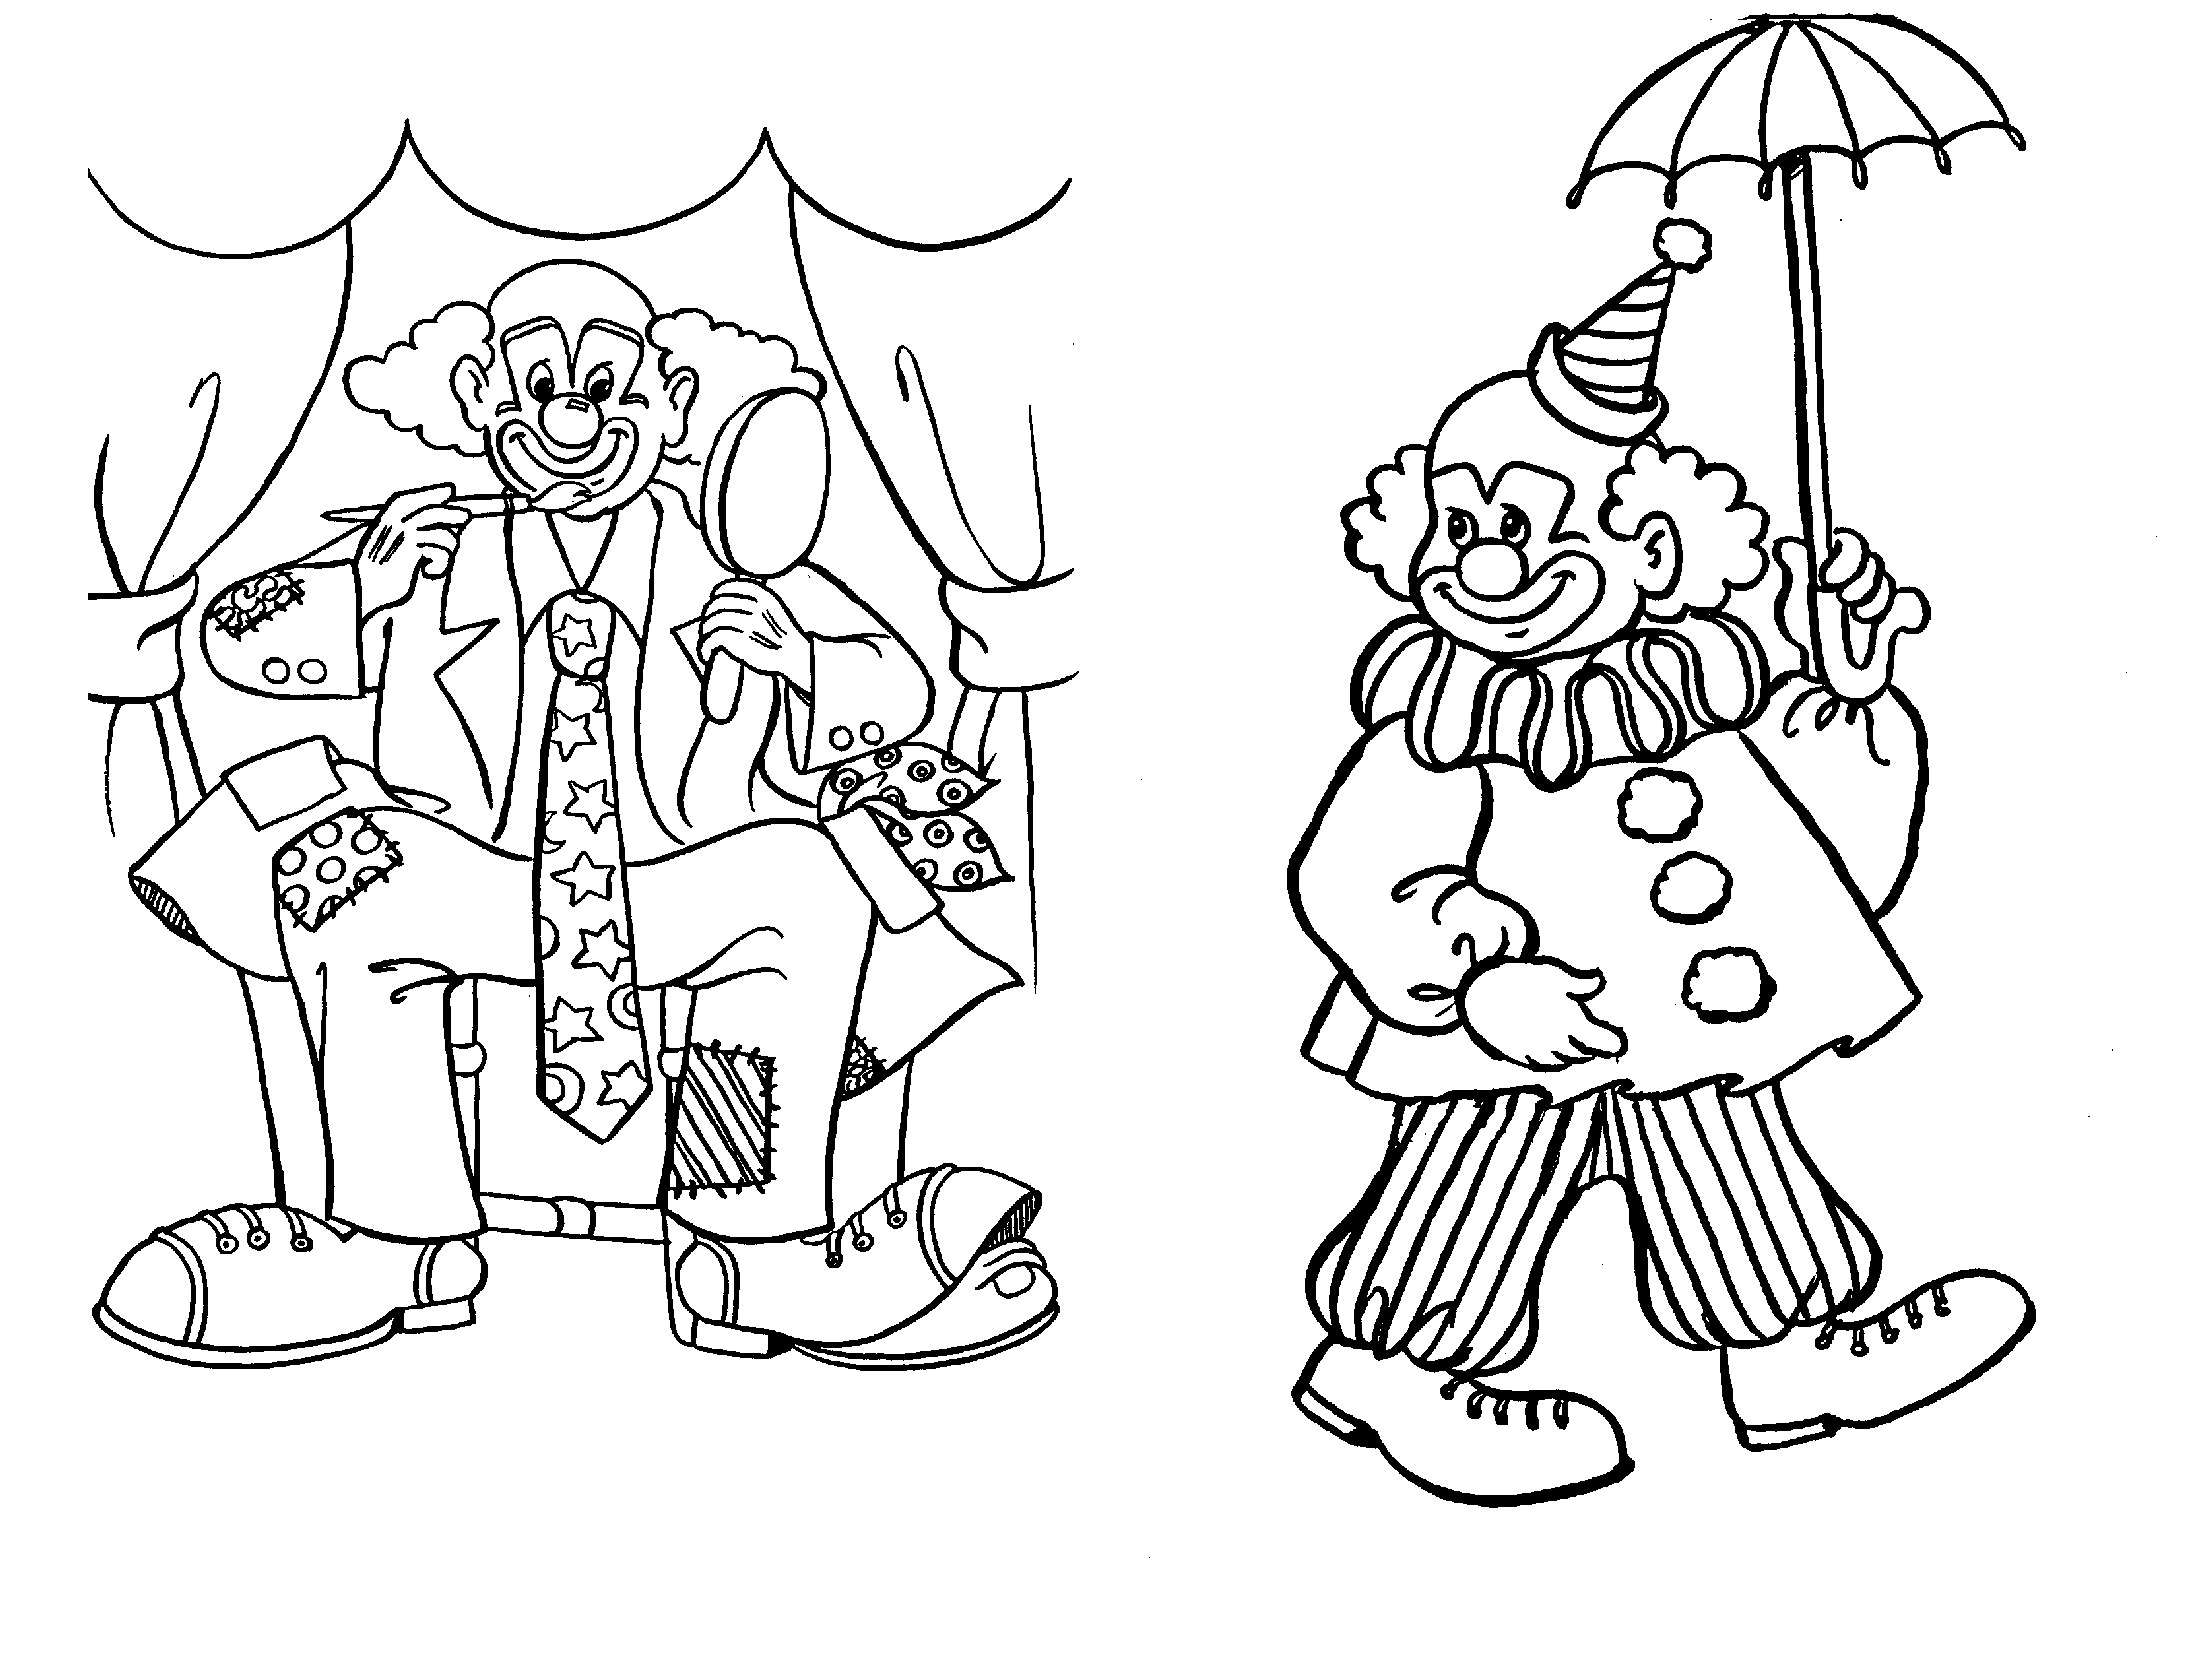 Adult Best Icp Coloring Pages Gallery Images cute clown hat coloring page navies for pages gallery images